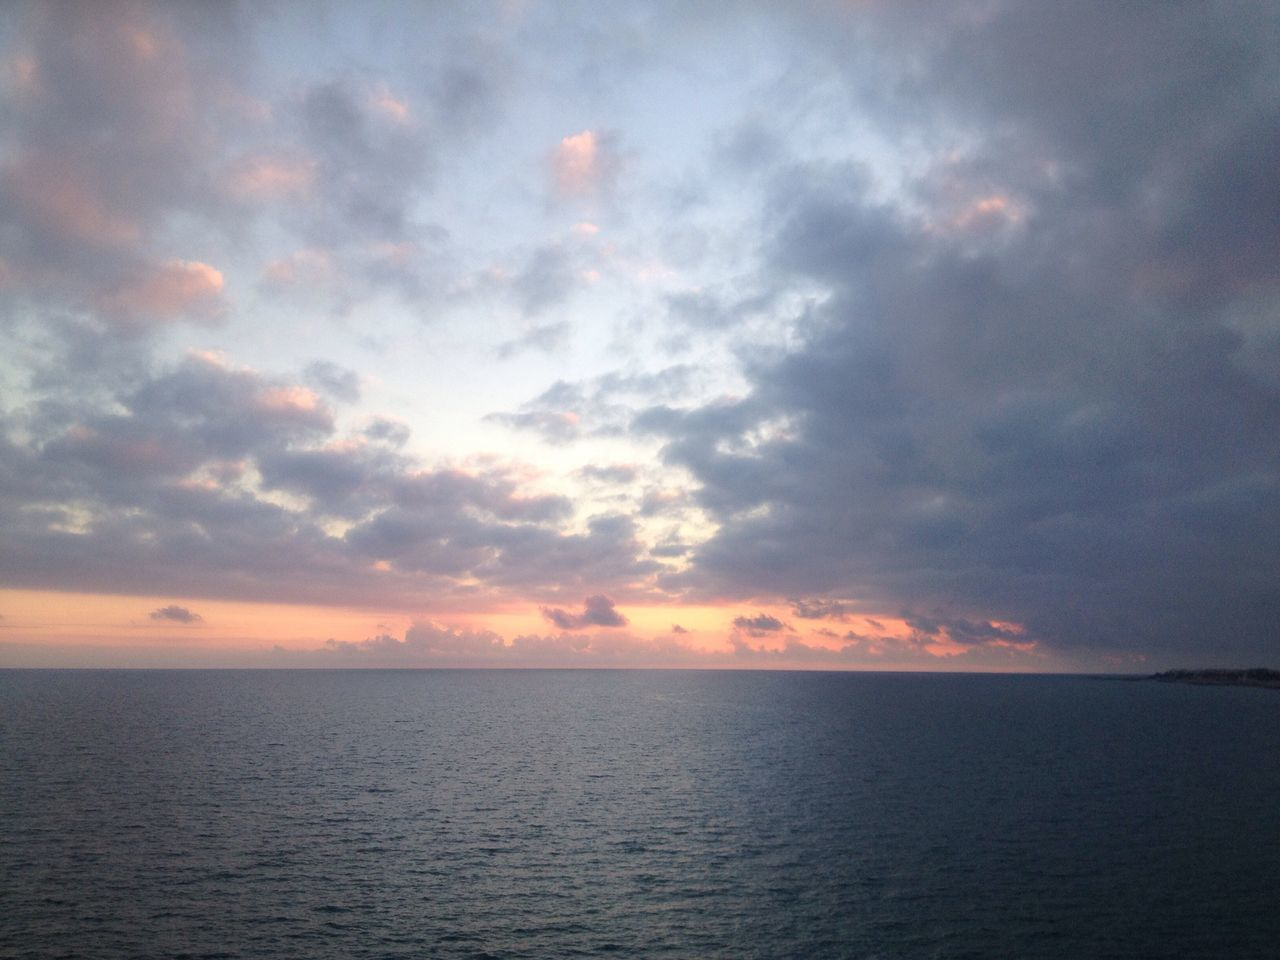 sea, freedom, sunset, nature, remote, water, choice, strength, vistas, scenics, tranquility, beauty in nature, sky, no people, outdoors